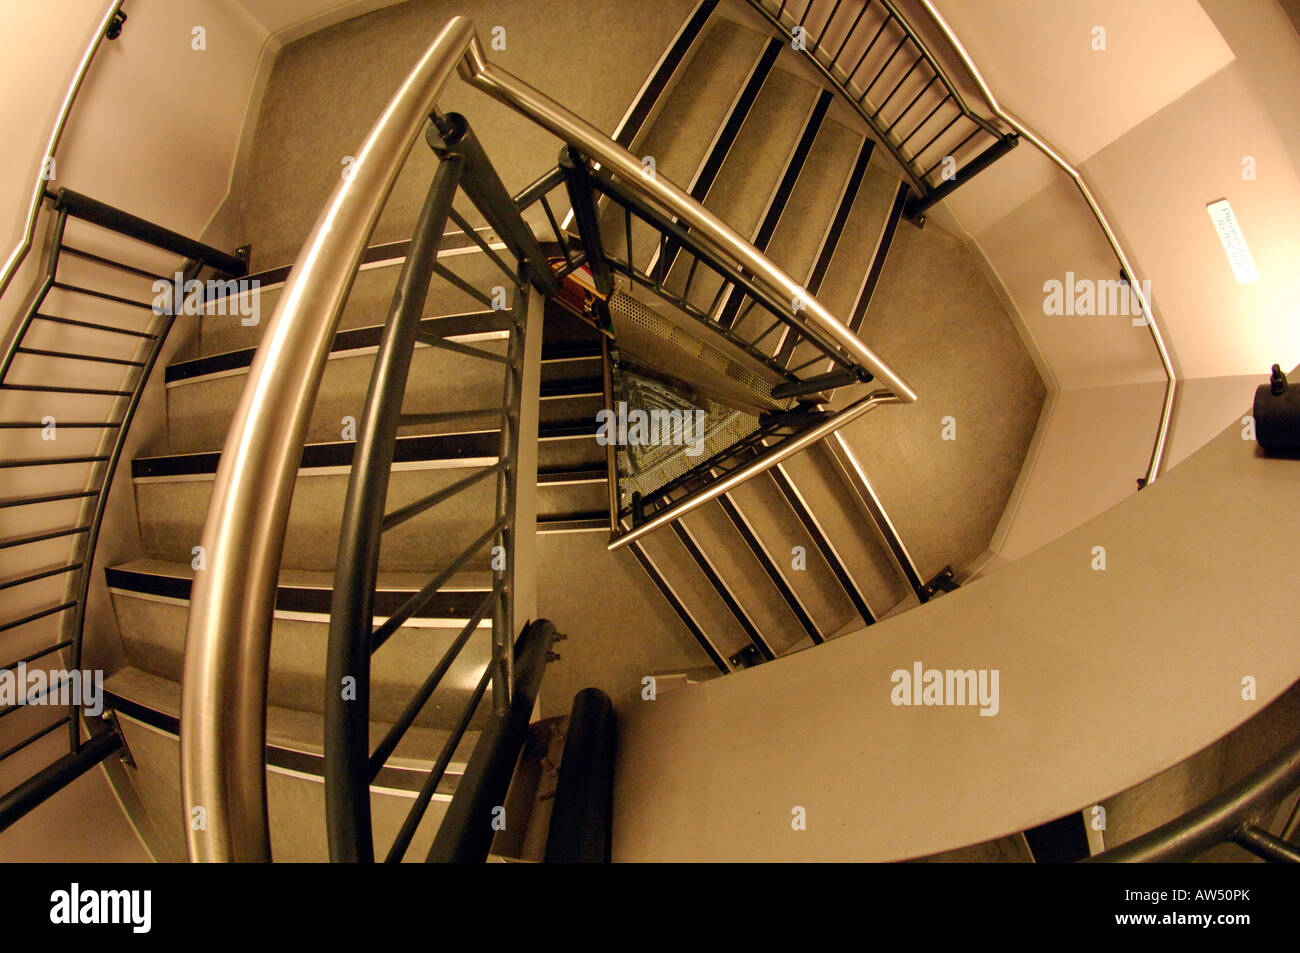 a modern staircase stairwell well spiraling looking down through the steps stairs through multiple floors towards Stock Photo